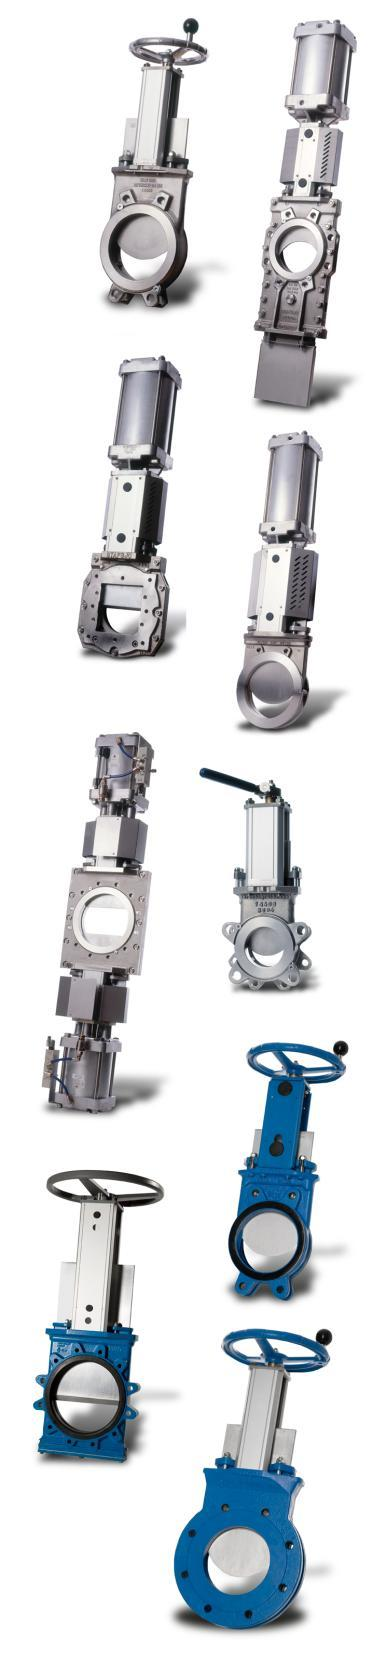 Operating instruction MV, XV, HG, HP, RKO, D2G, TV, BV, WB & SLV 1 Introduction 2 2 Stafsjö s knife gate valves 2 3 Technical information 2 3.1 Pressure test 2 3.